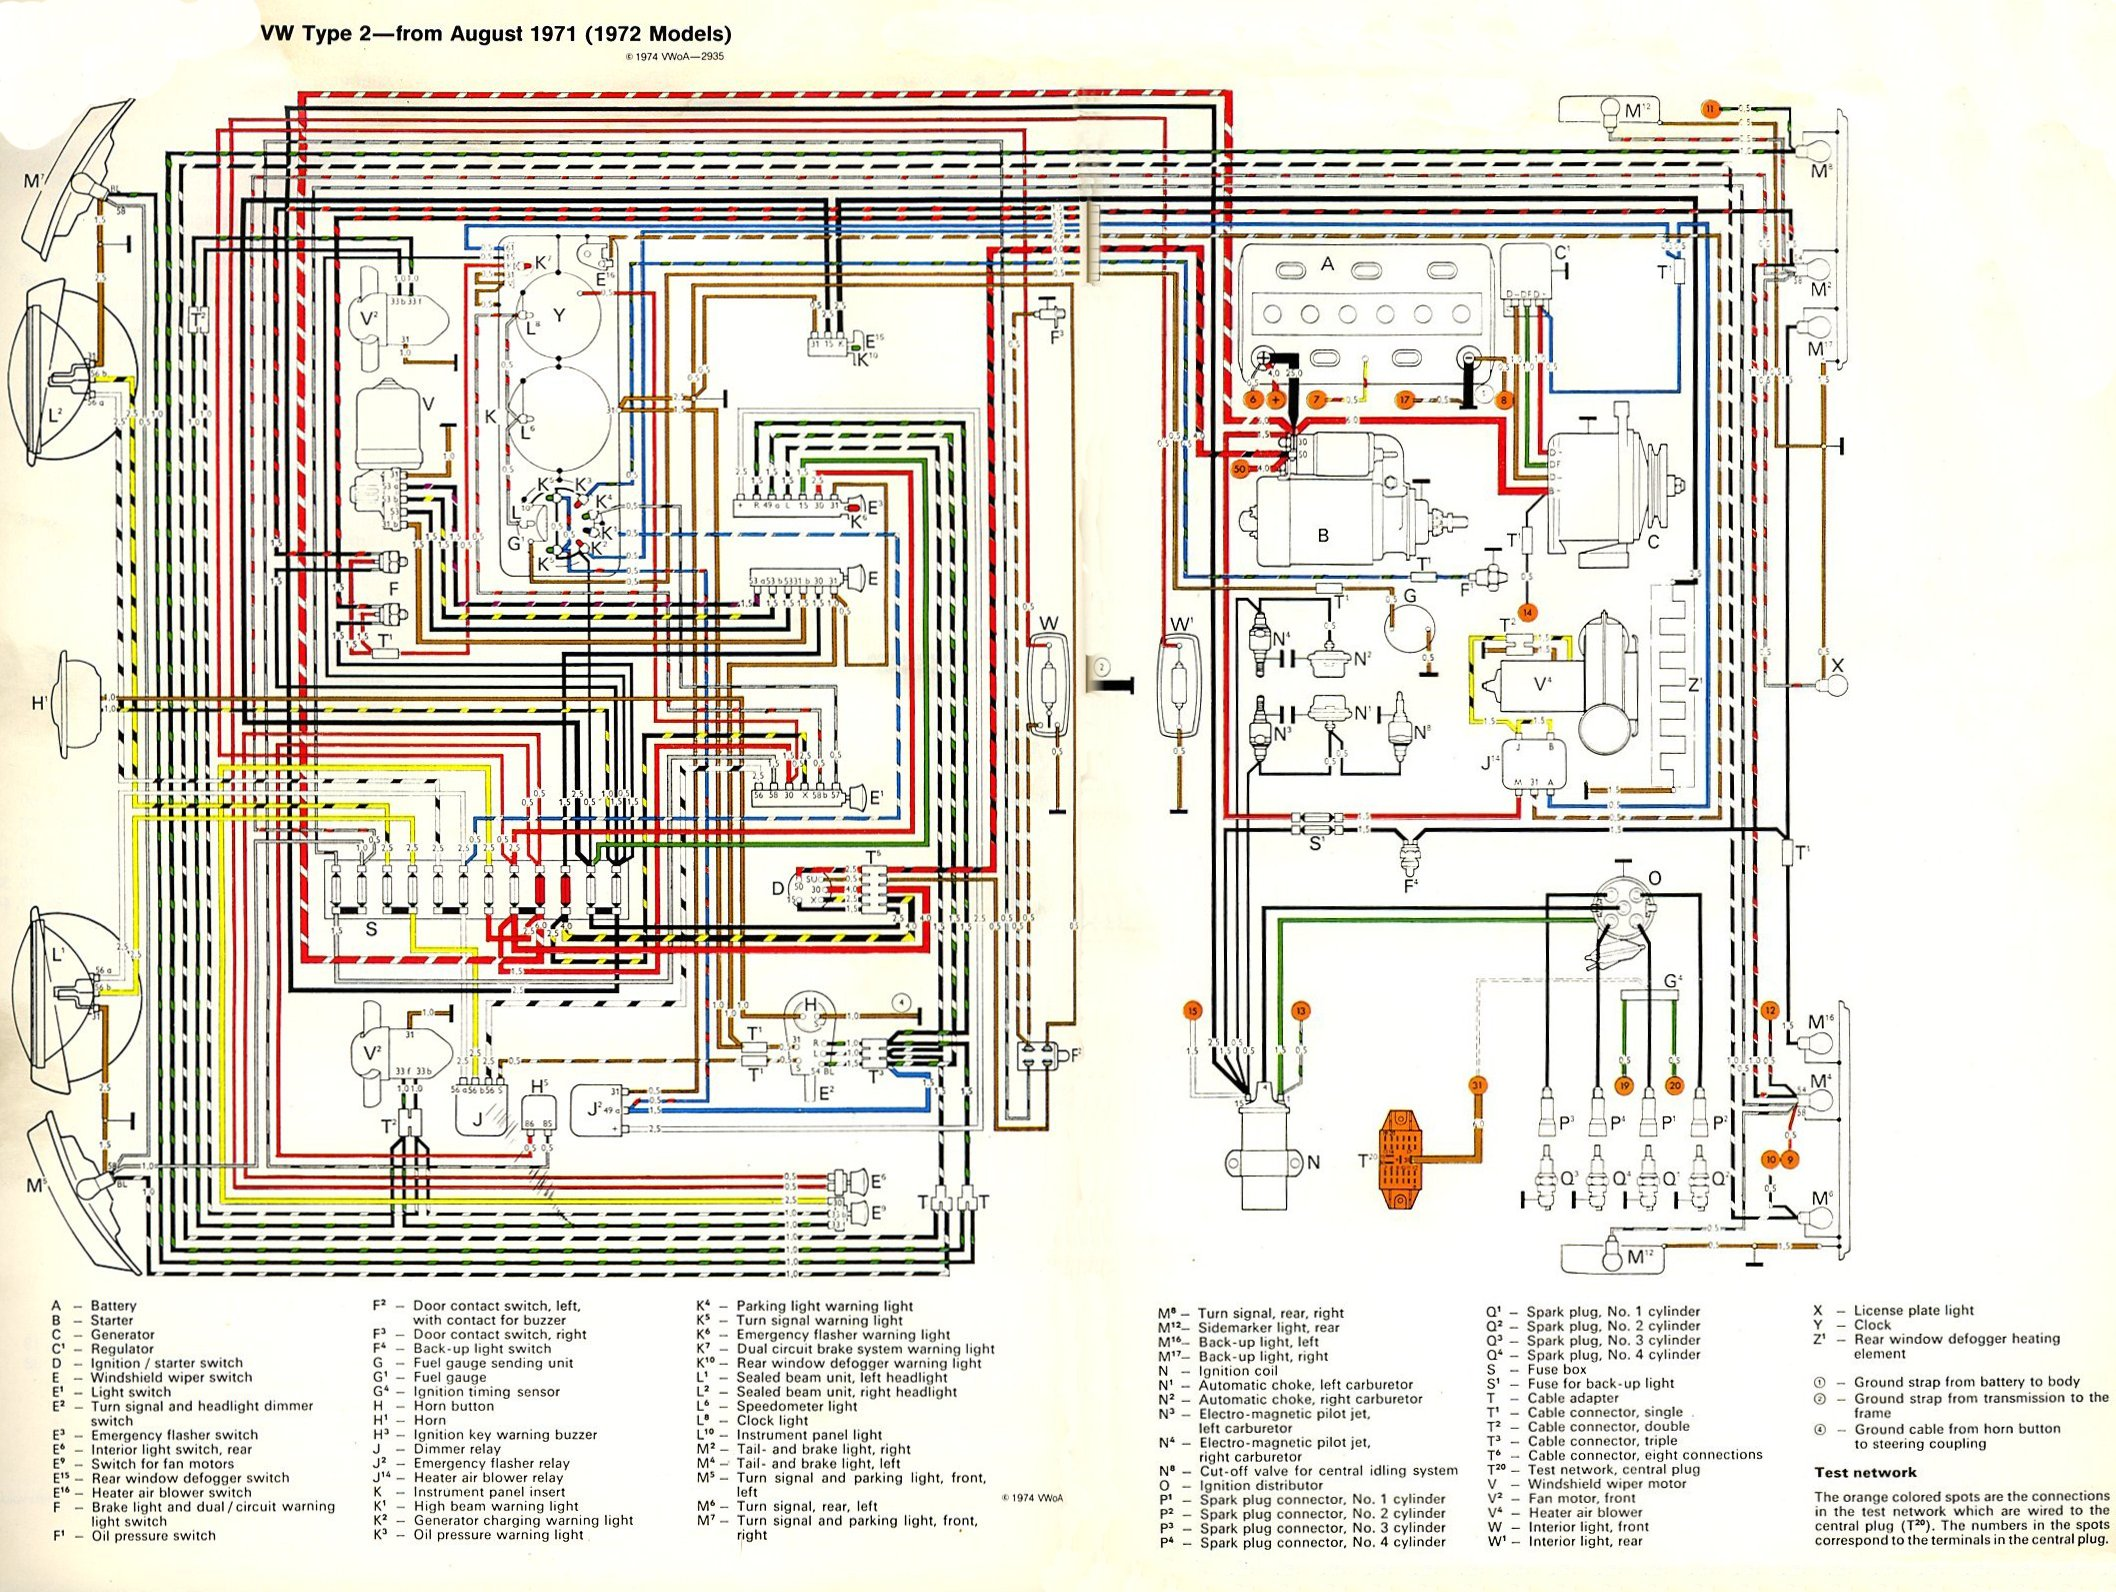 1972 Chevy Truck Wiring Diagram & ... 1972 Chevy Truck Wiper Motor ...